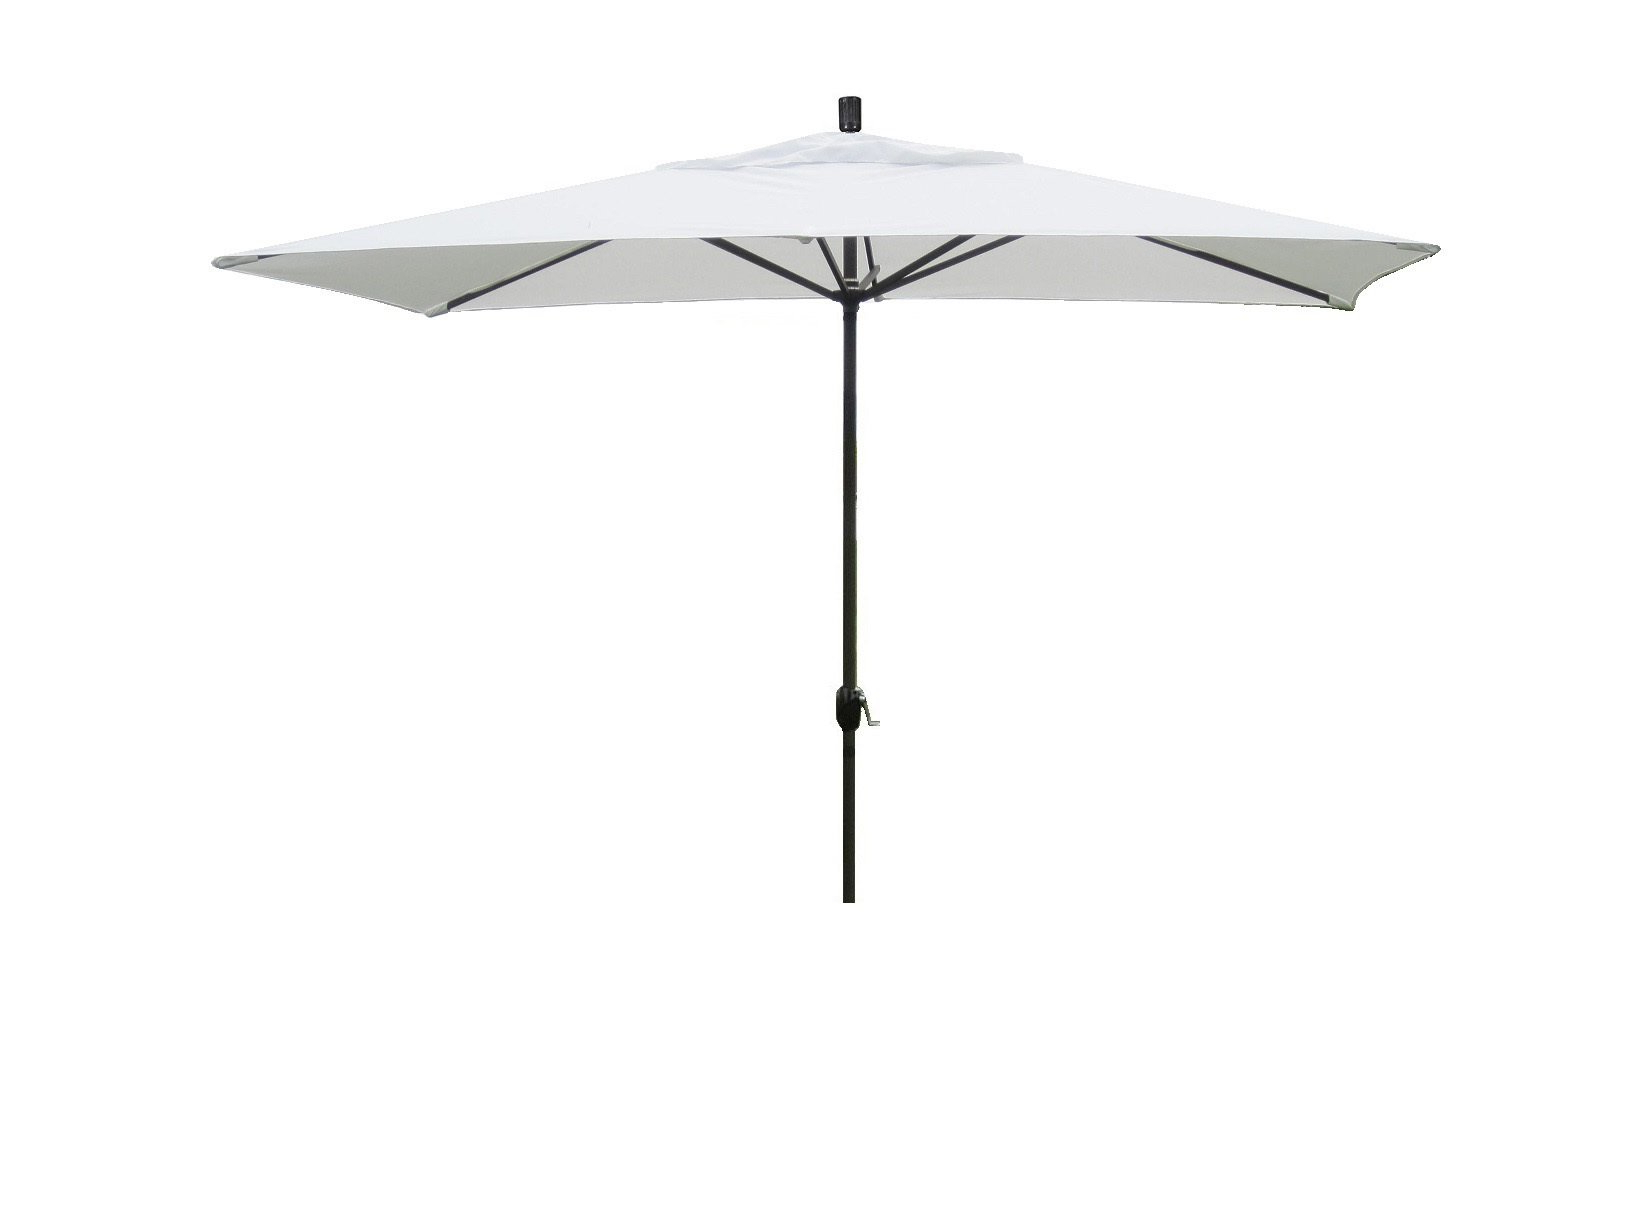 Current Fordbridge Rectangular Market Umbrellas With Regard To Northfleet 10' X 6' Rectangular Market Umbrella (View 8 of 20)